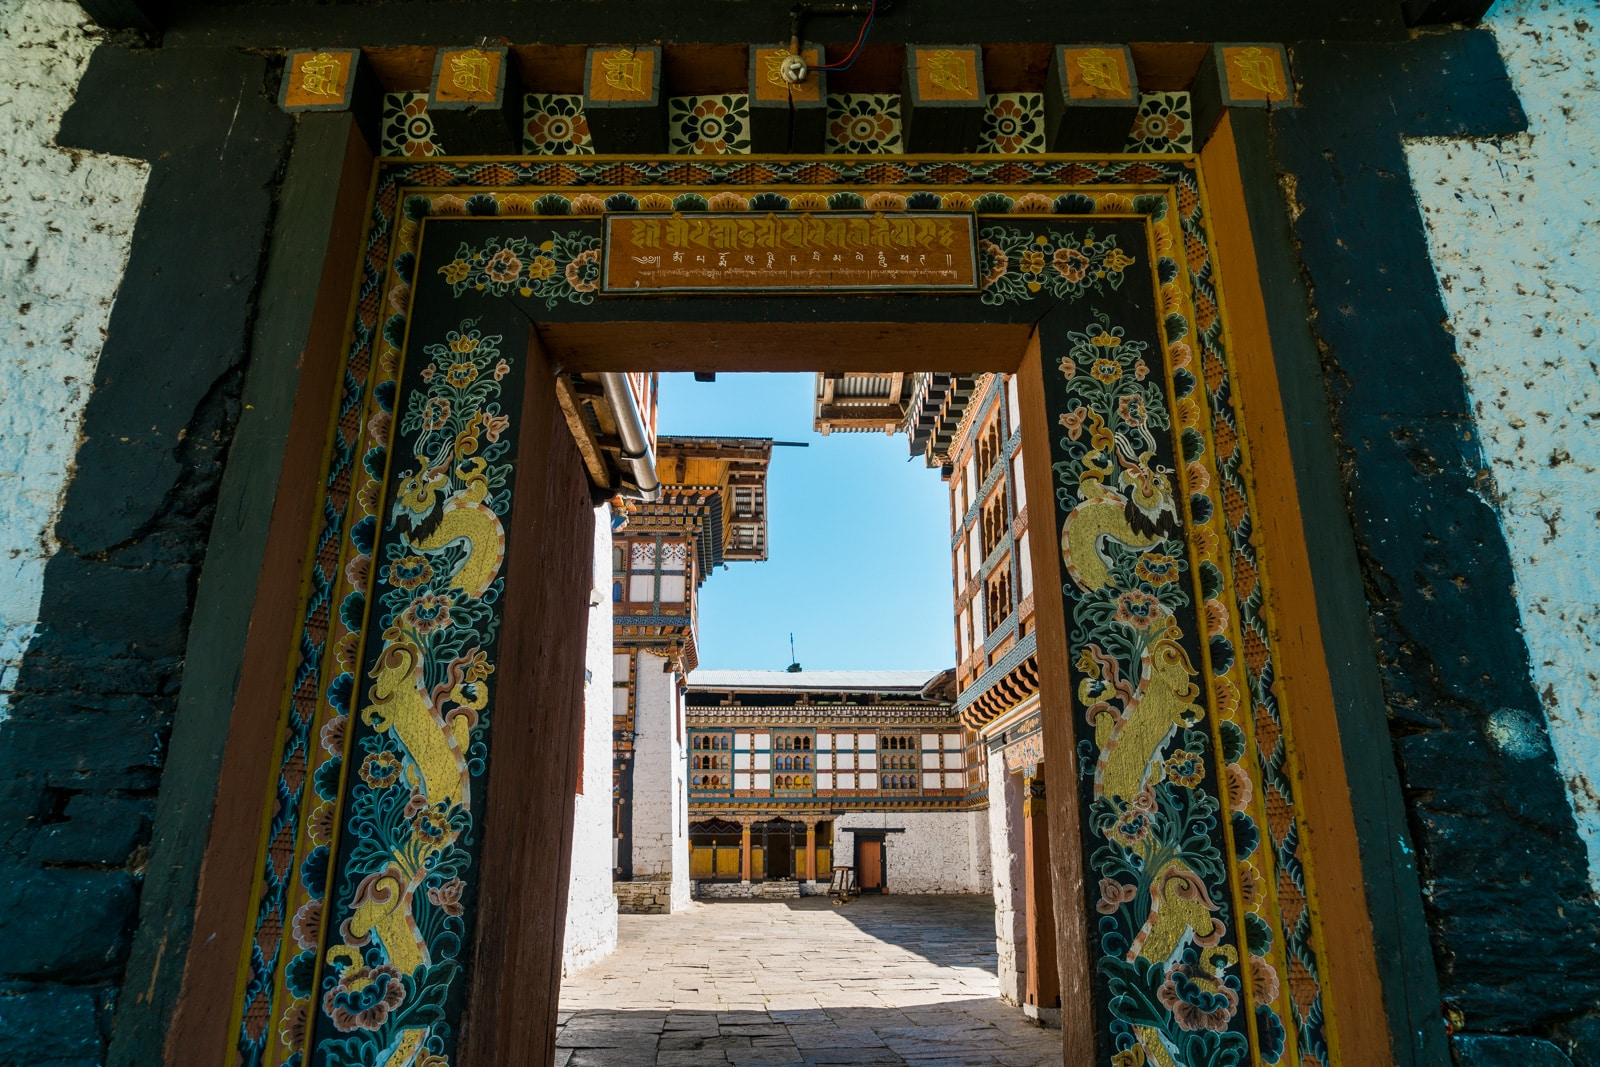 Stunning photos of Bhutan - Inndocholing dzong - Lost With Purpose travel blog